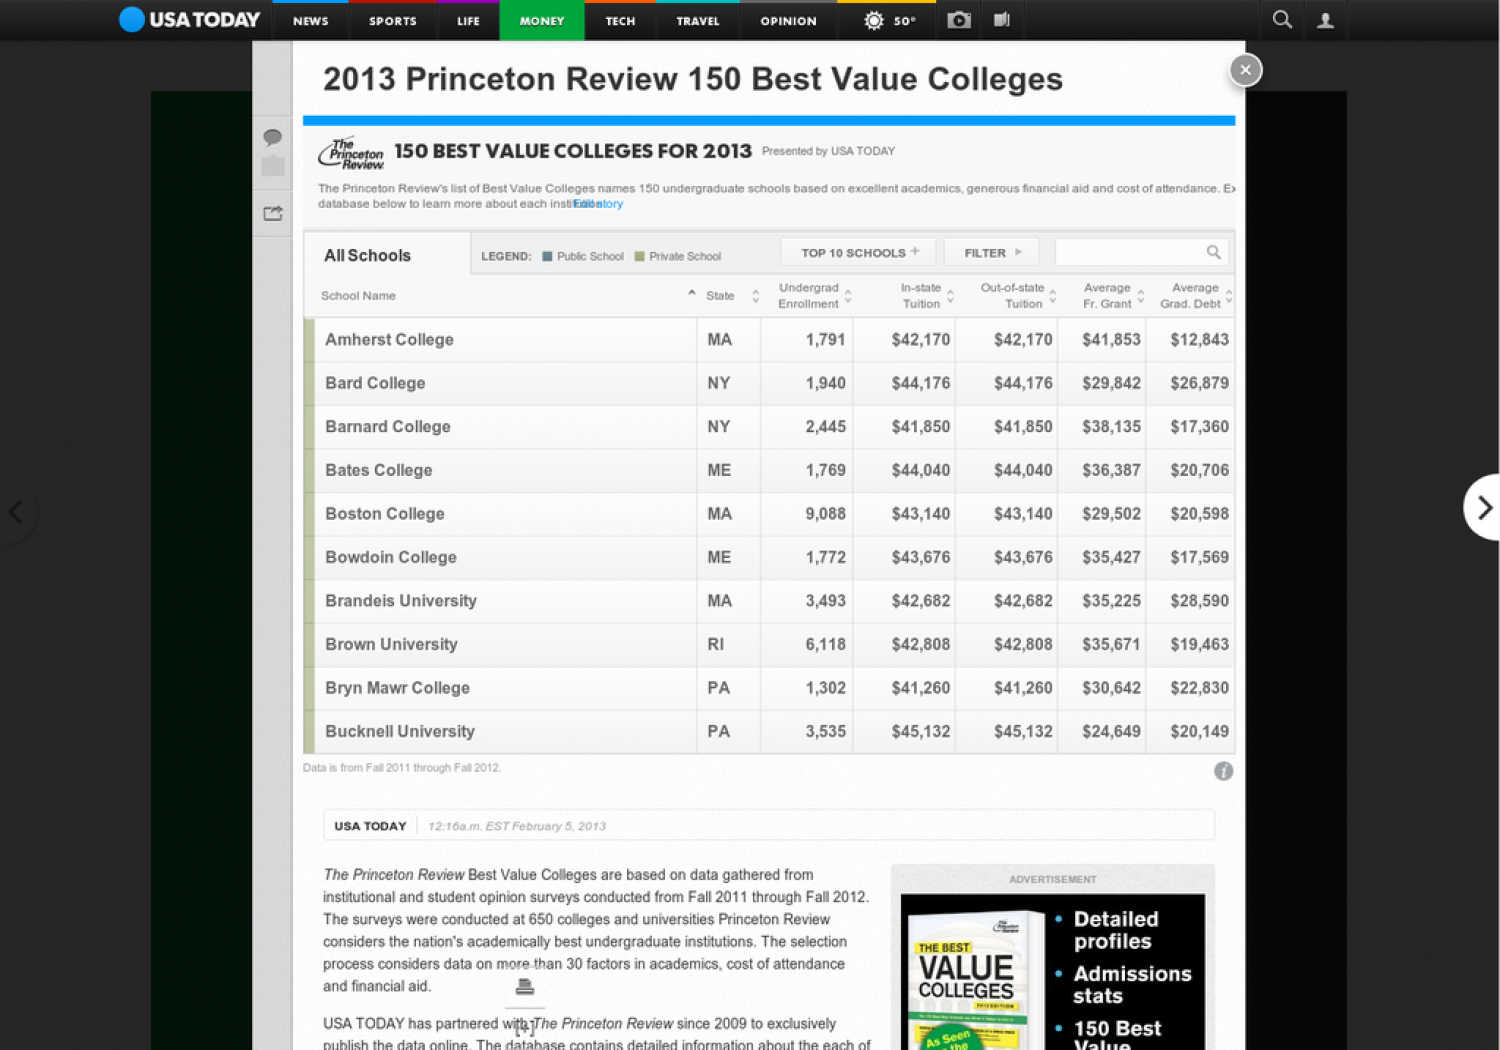 Princeton Review/USA TODAY 150 Best Value Colleges for 2013 Infographic